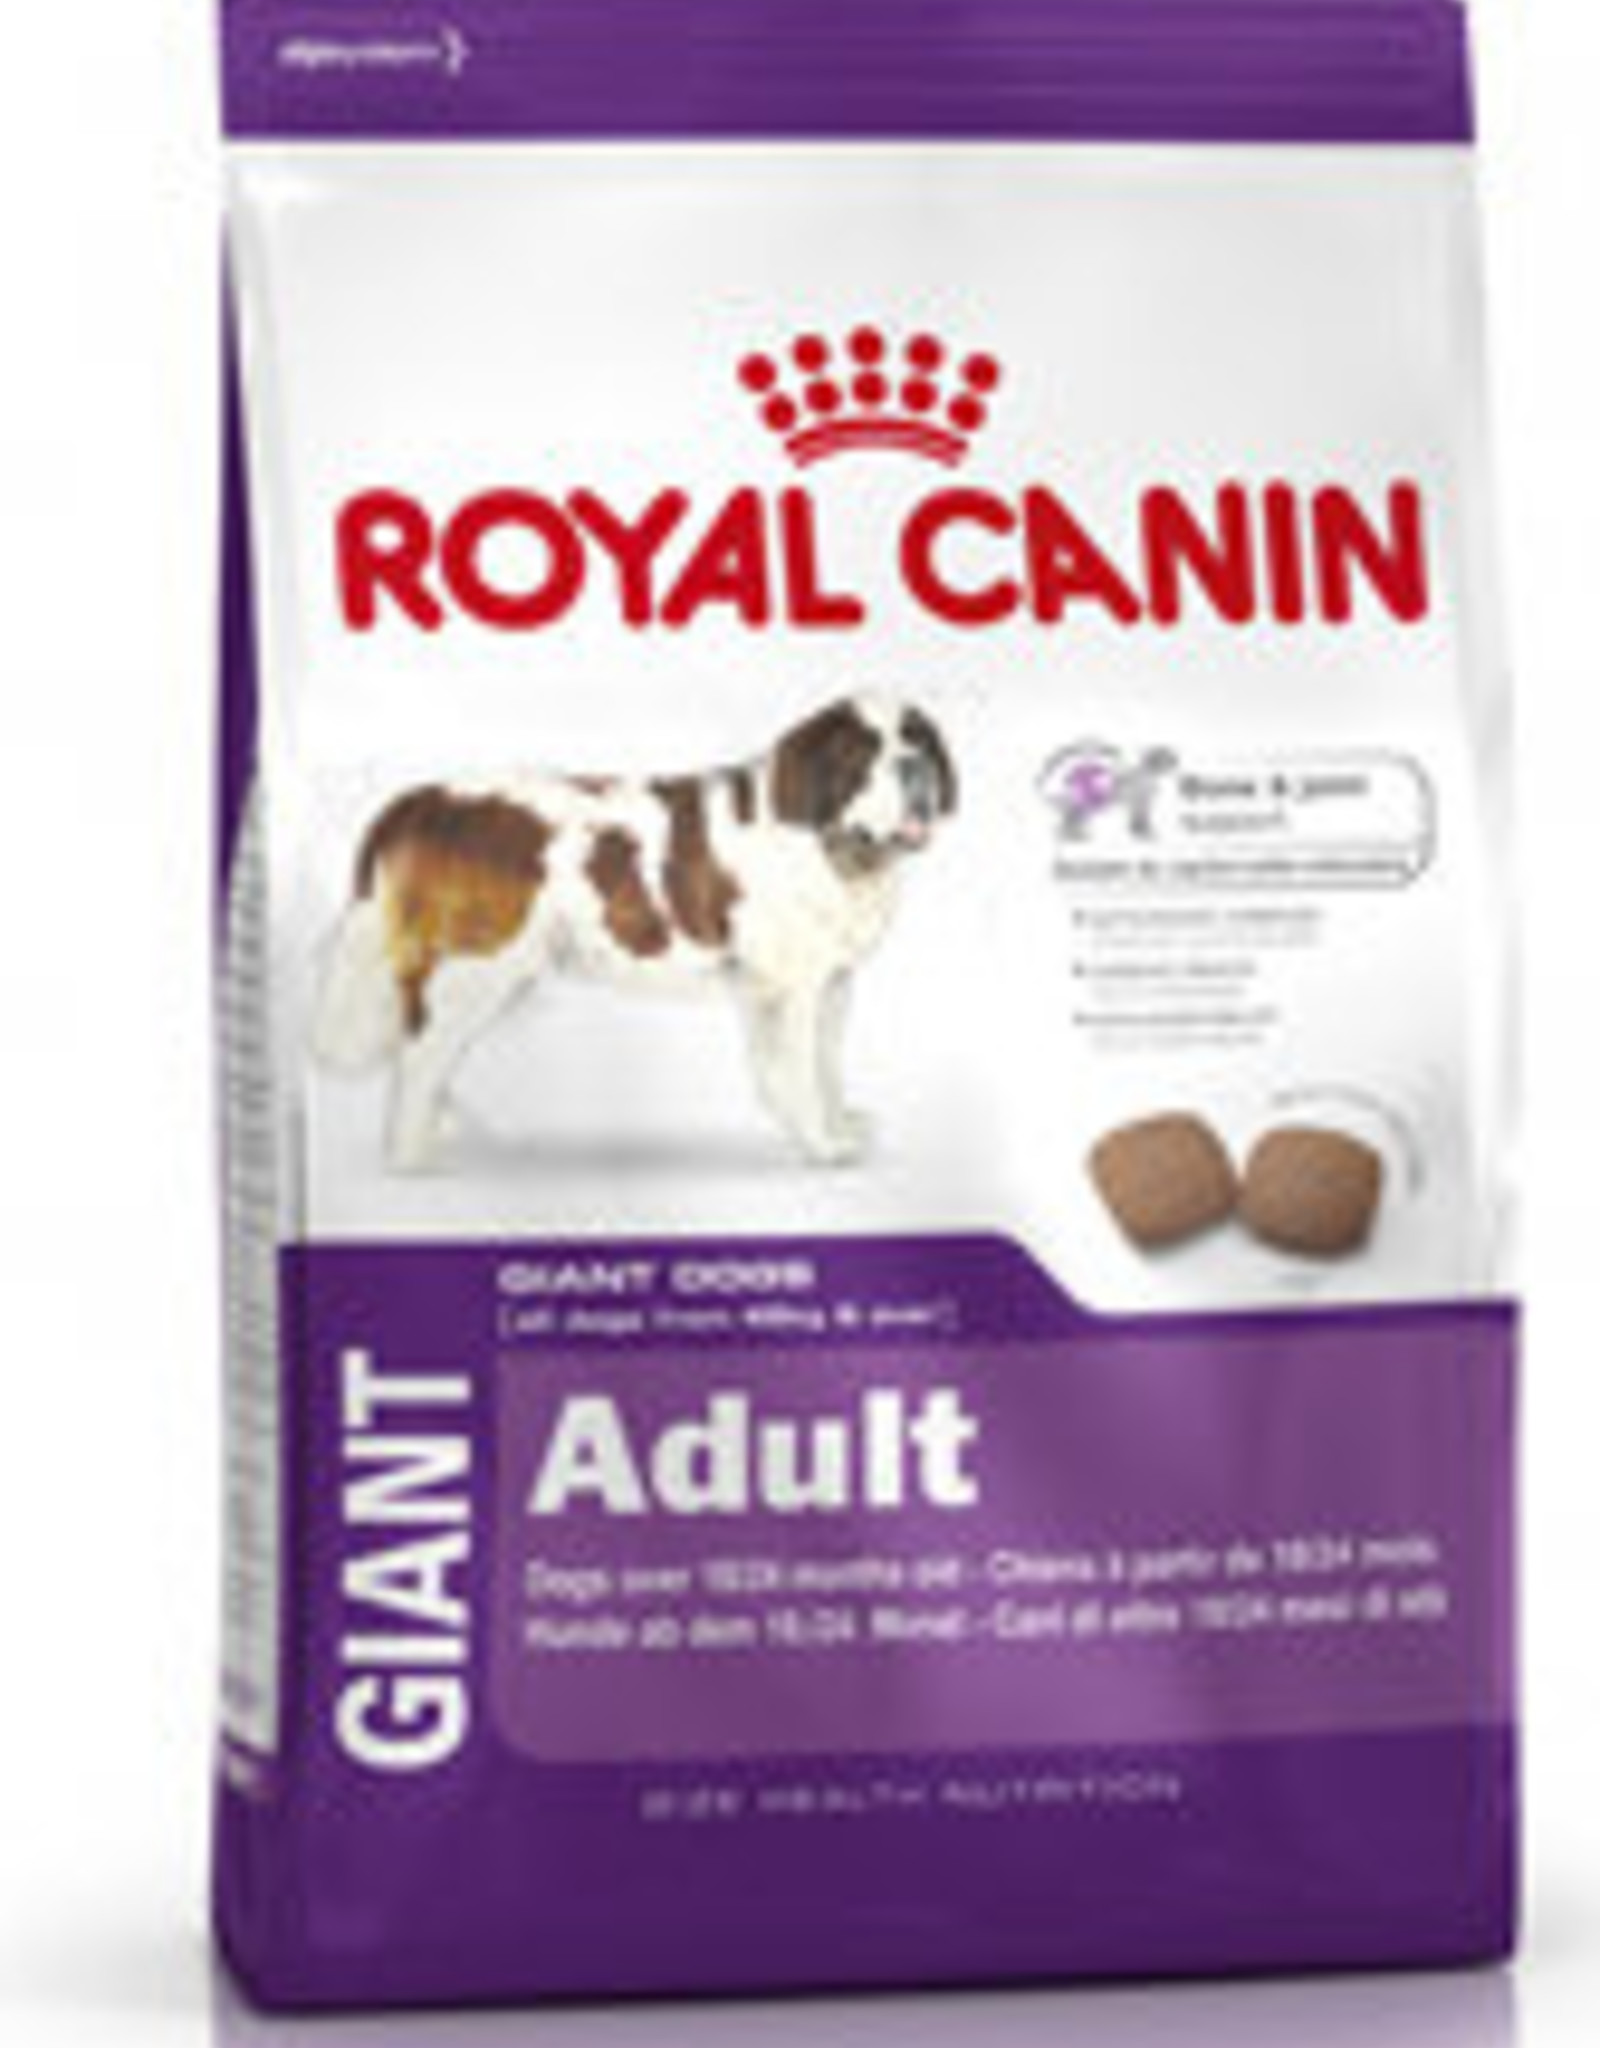 Royal Canin Royal Canin Shn Giant Adult Canine 15kg